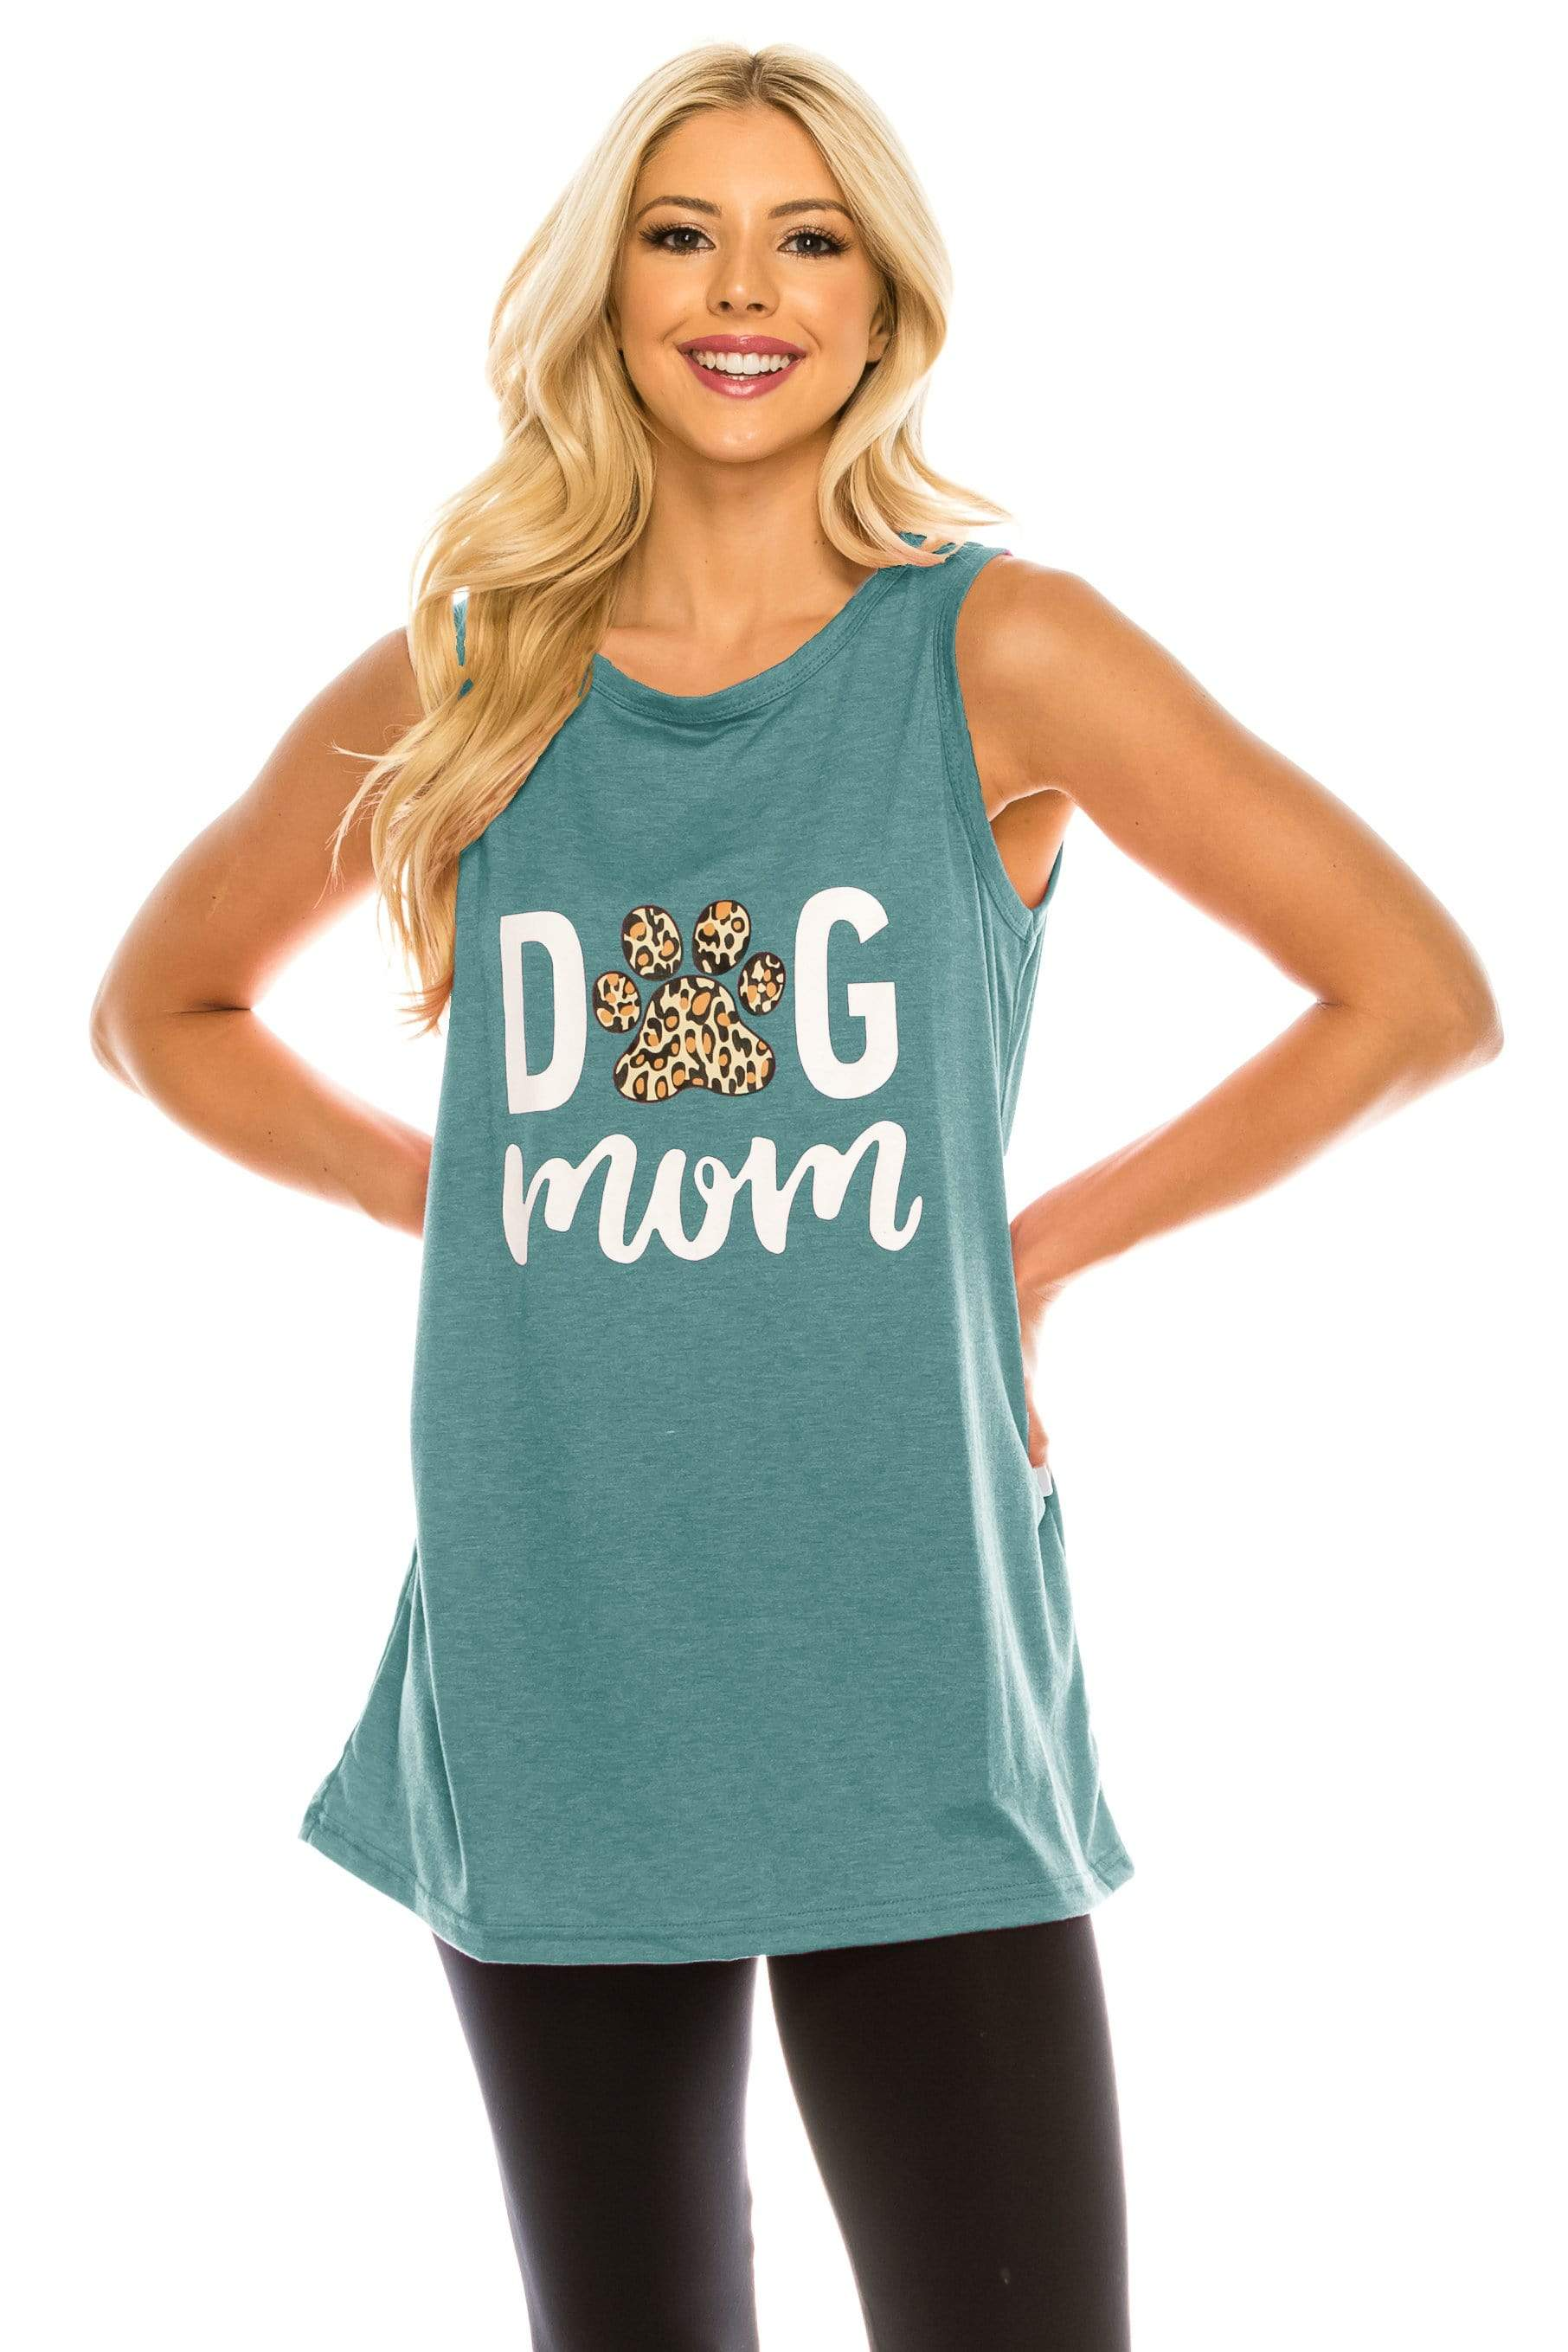 Haute Edition WOMEN'S TOP TEAL / S Haute Edition Women's Dog Mom Loose Fit Tank top. Plus size available